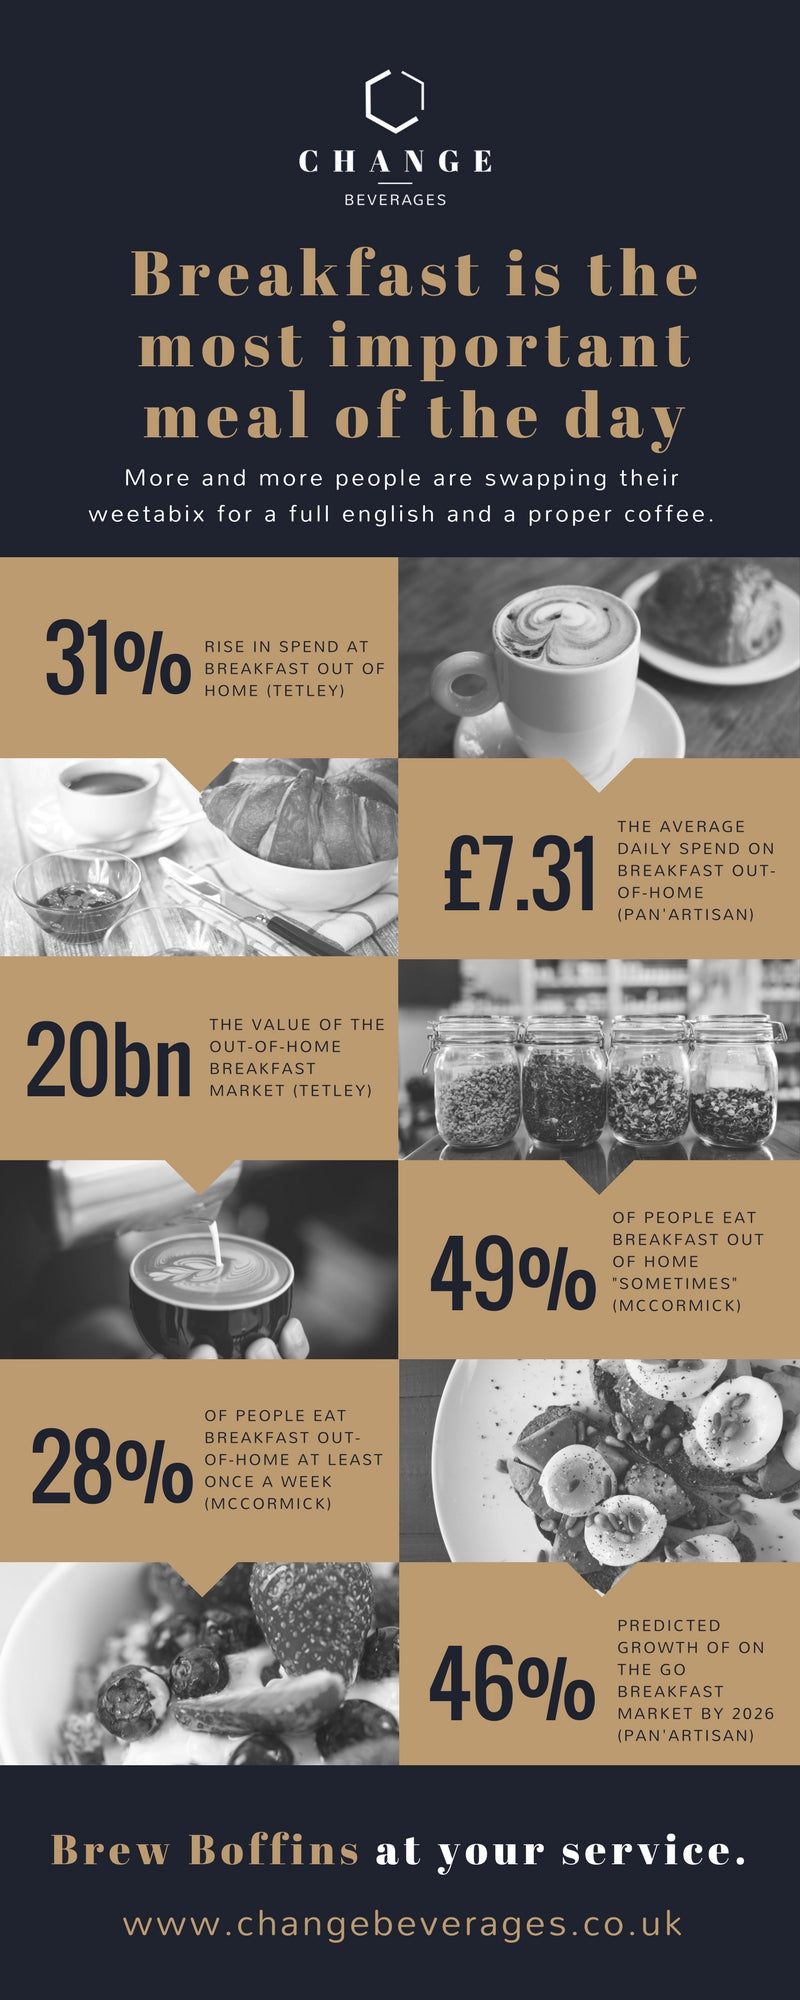 Breakfast is the most important meal of the day infographic